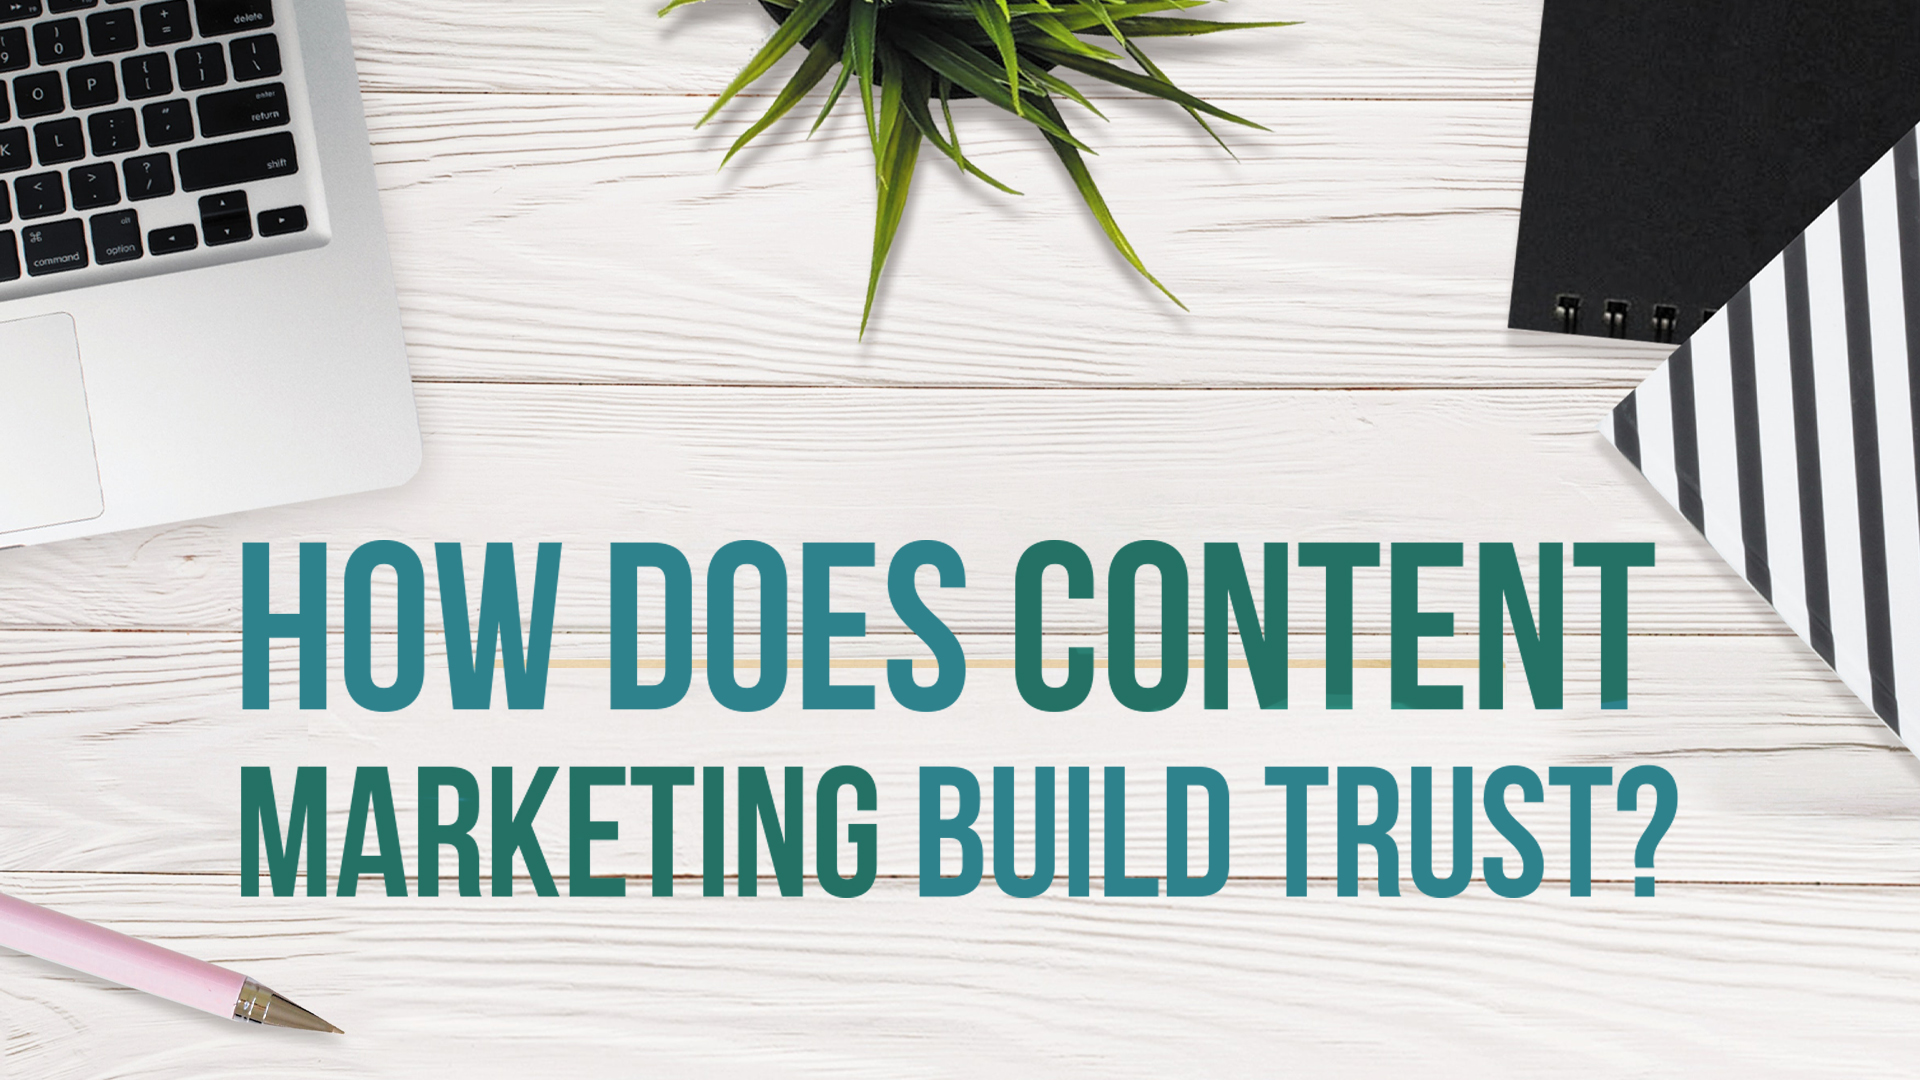 How Does Content Marketing Build Trust?